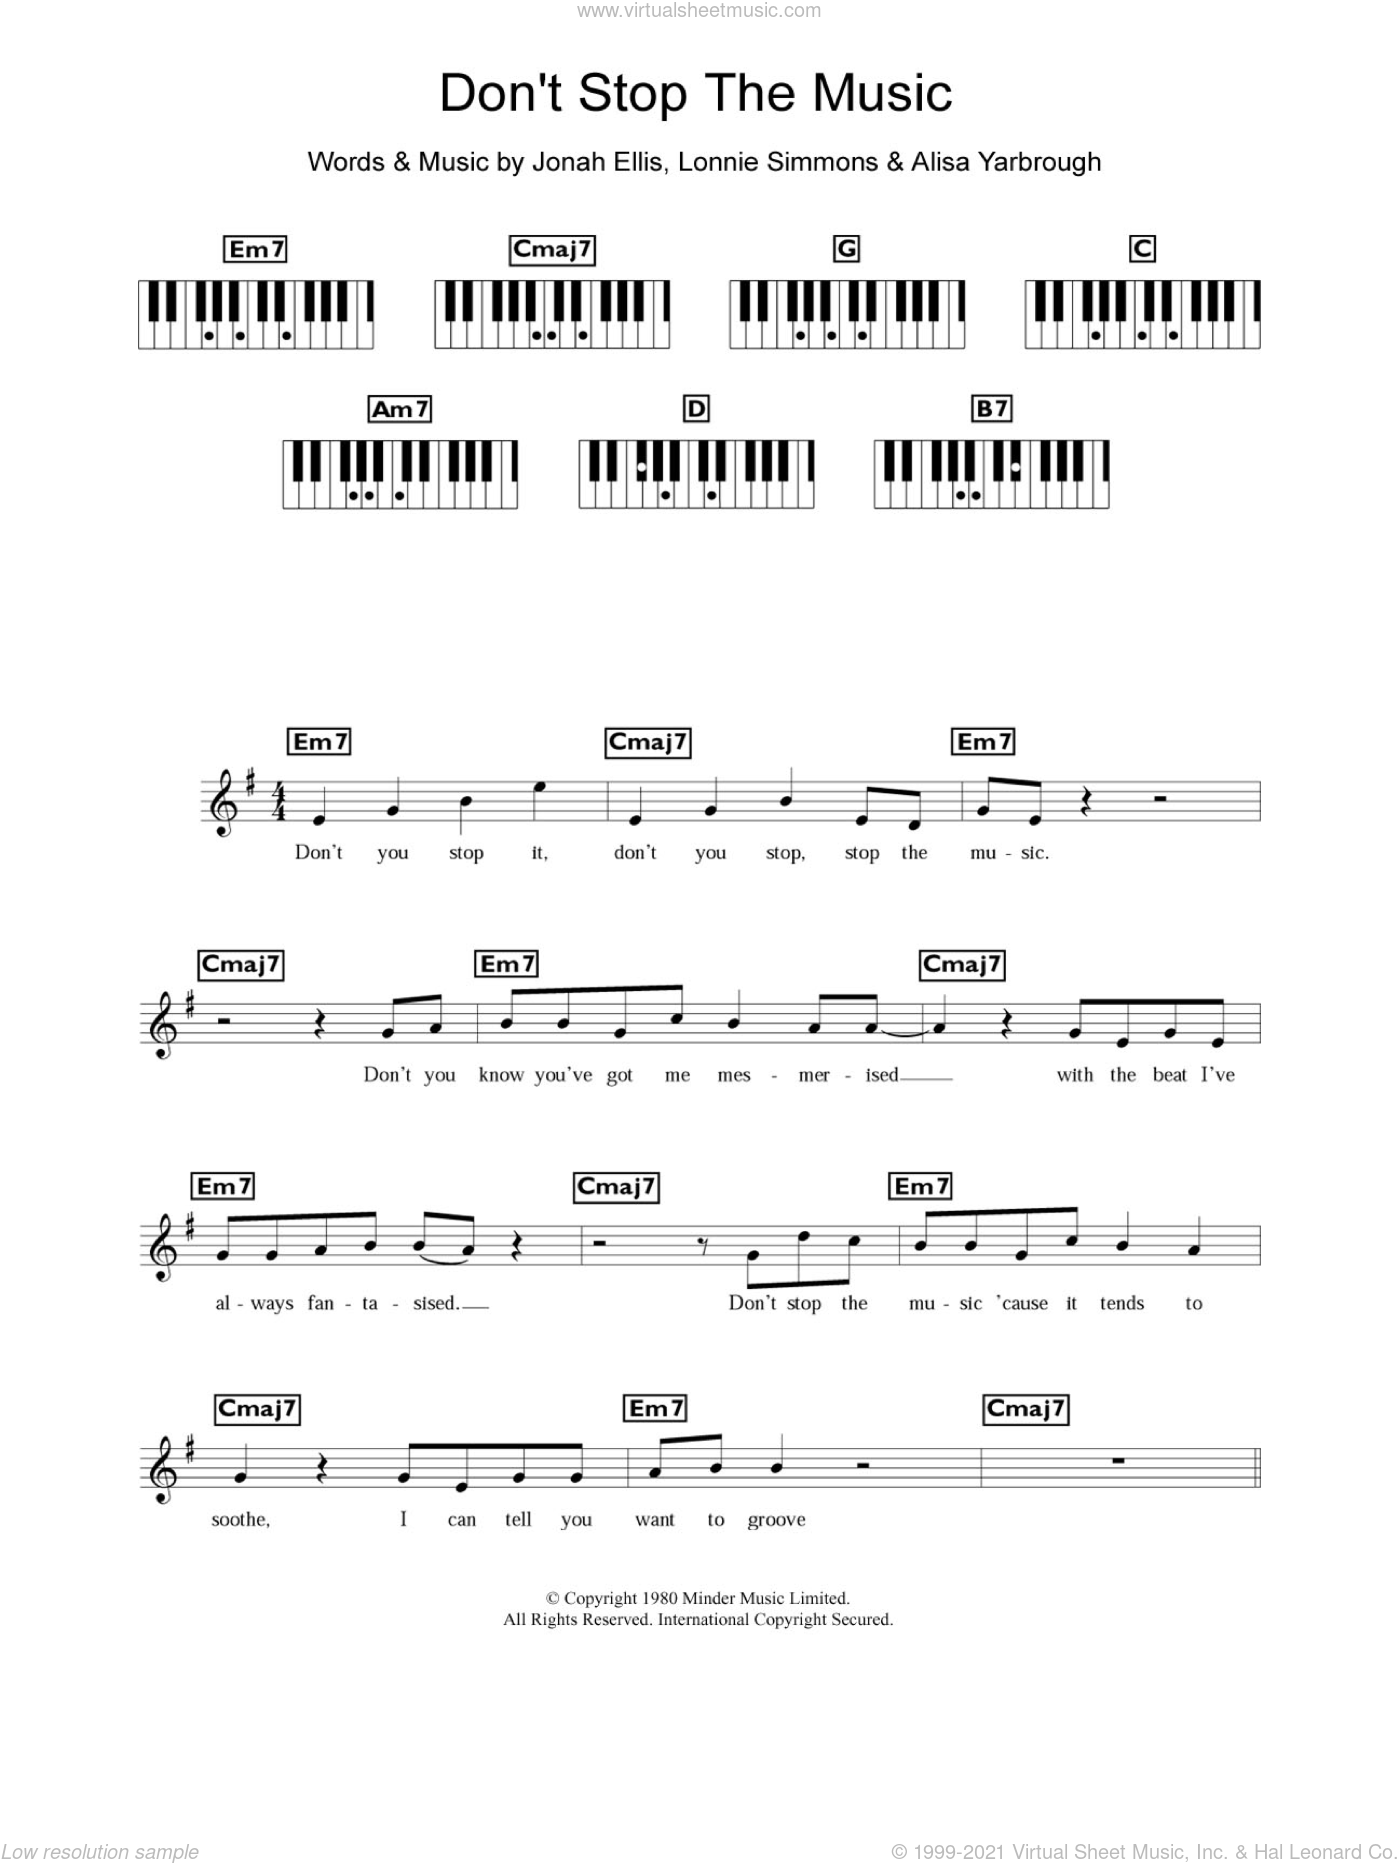 Don't Stop The Music sheet music for piano solo (chords, lyrics, melody) by Yarbrough and Peoples, Alisa Yarbrough, Jonah Ellis and Lonnie Simmons, intermediate piano (chords, lyrics, melody). Score Image Preview.